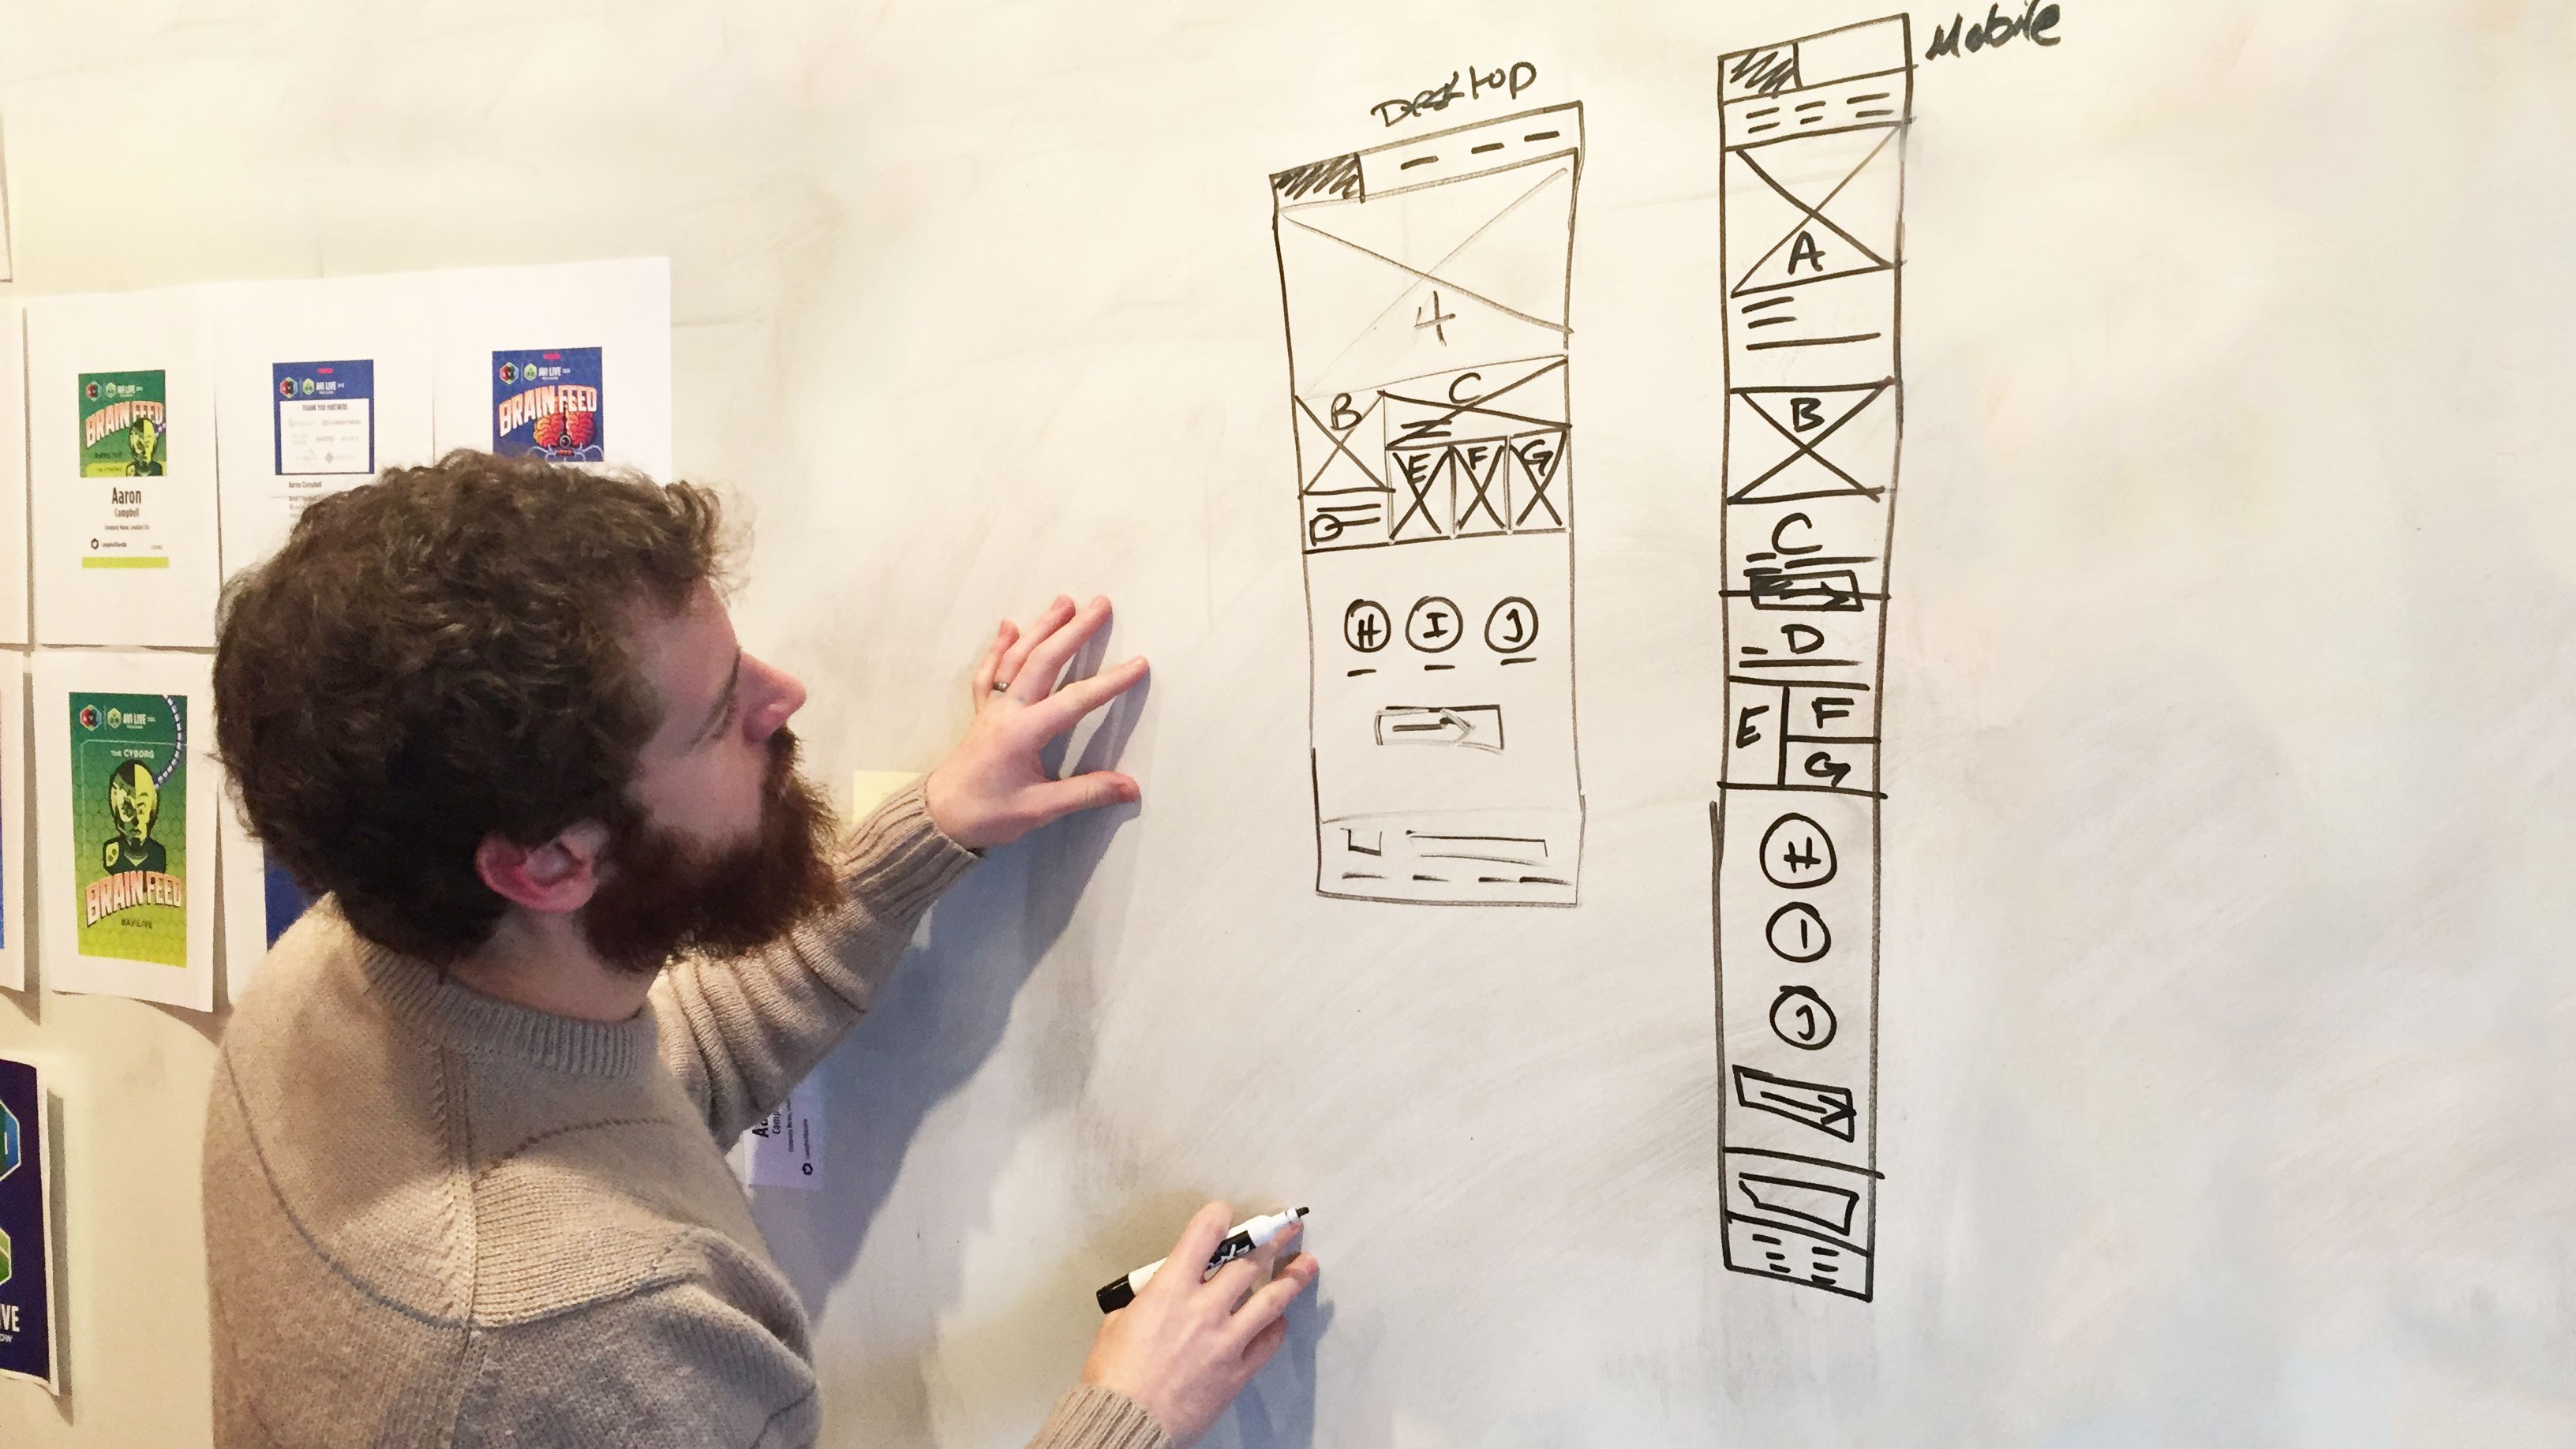 Designer sketching website wireframes on whiteboard